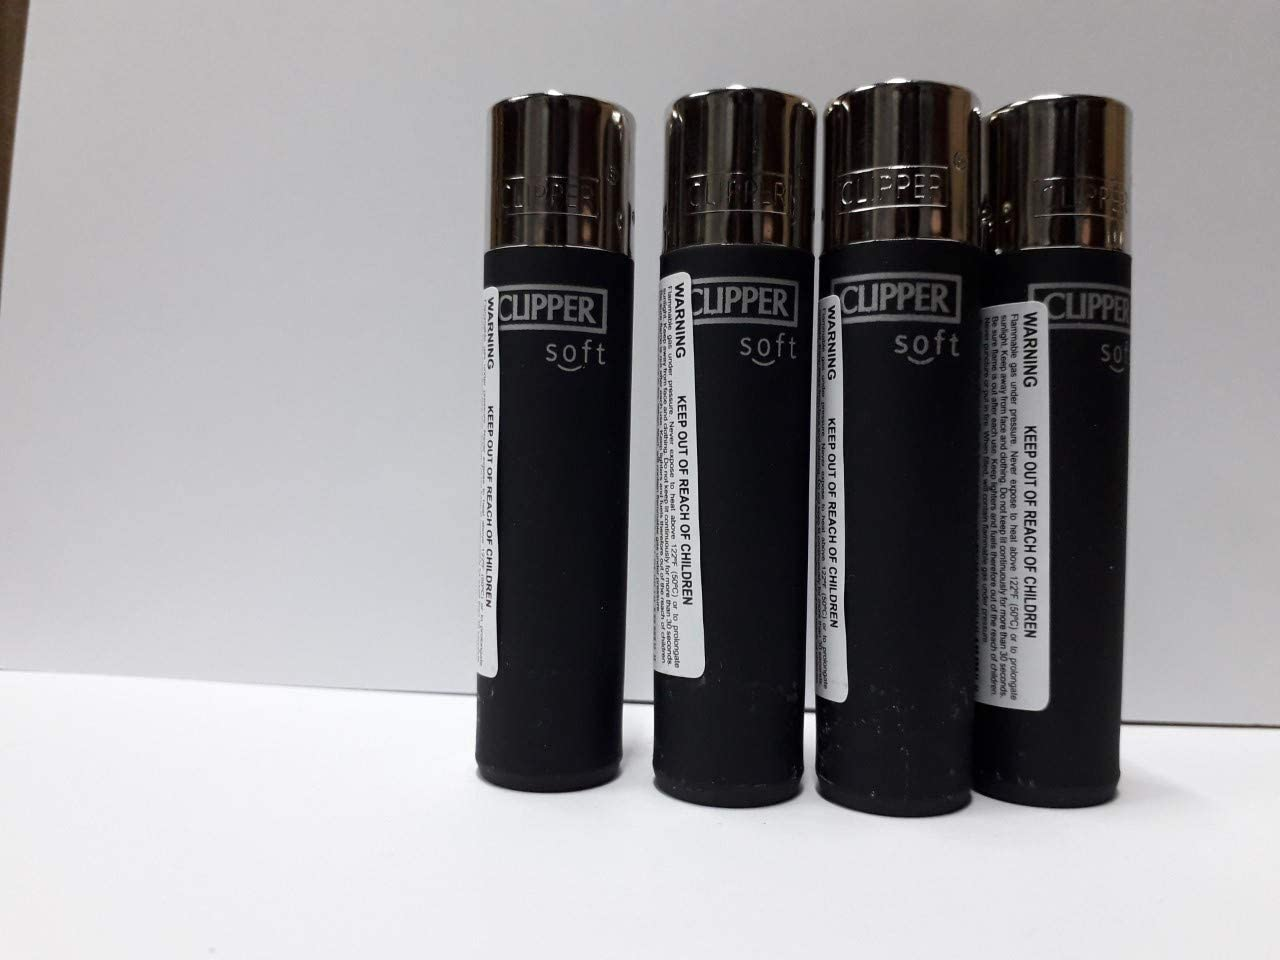 Clipper No. 26, Negro, Tacto Suave, Pack de 4 Encendedores: Amazon.es: Hogar